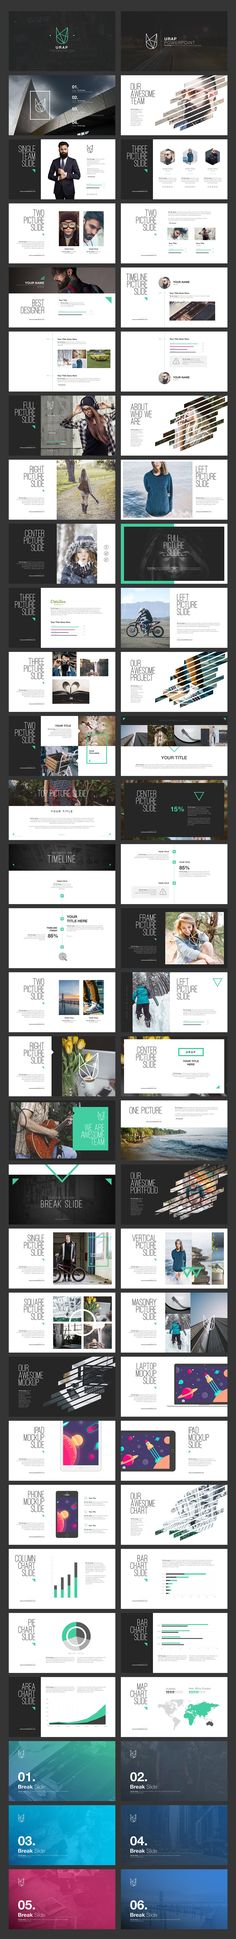 URAP PowerPoint Template by Angkalimabelas on @creativemarket …